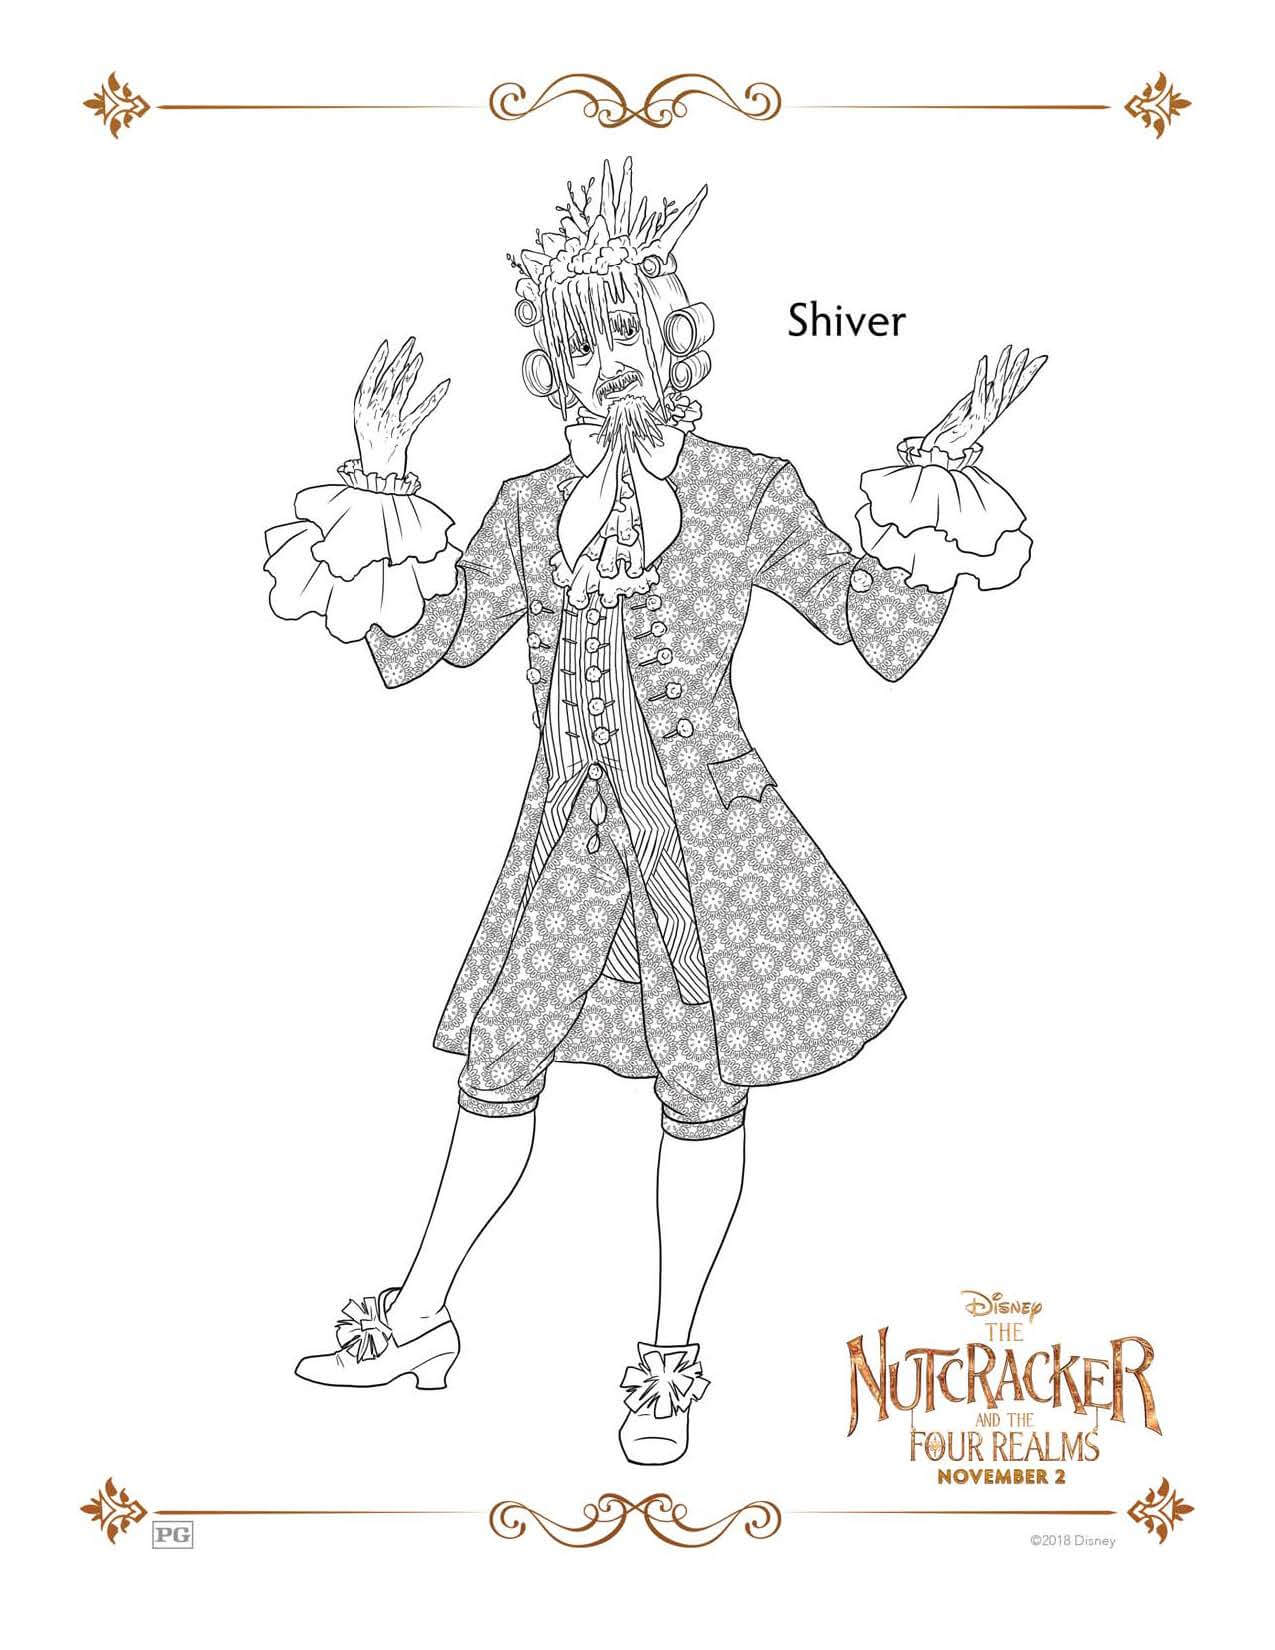 Shiver from THE NUTCRACKER AND THE FOUR REALMS